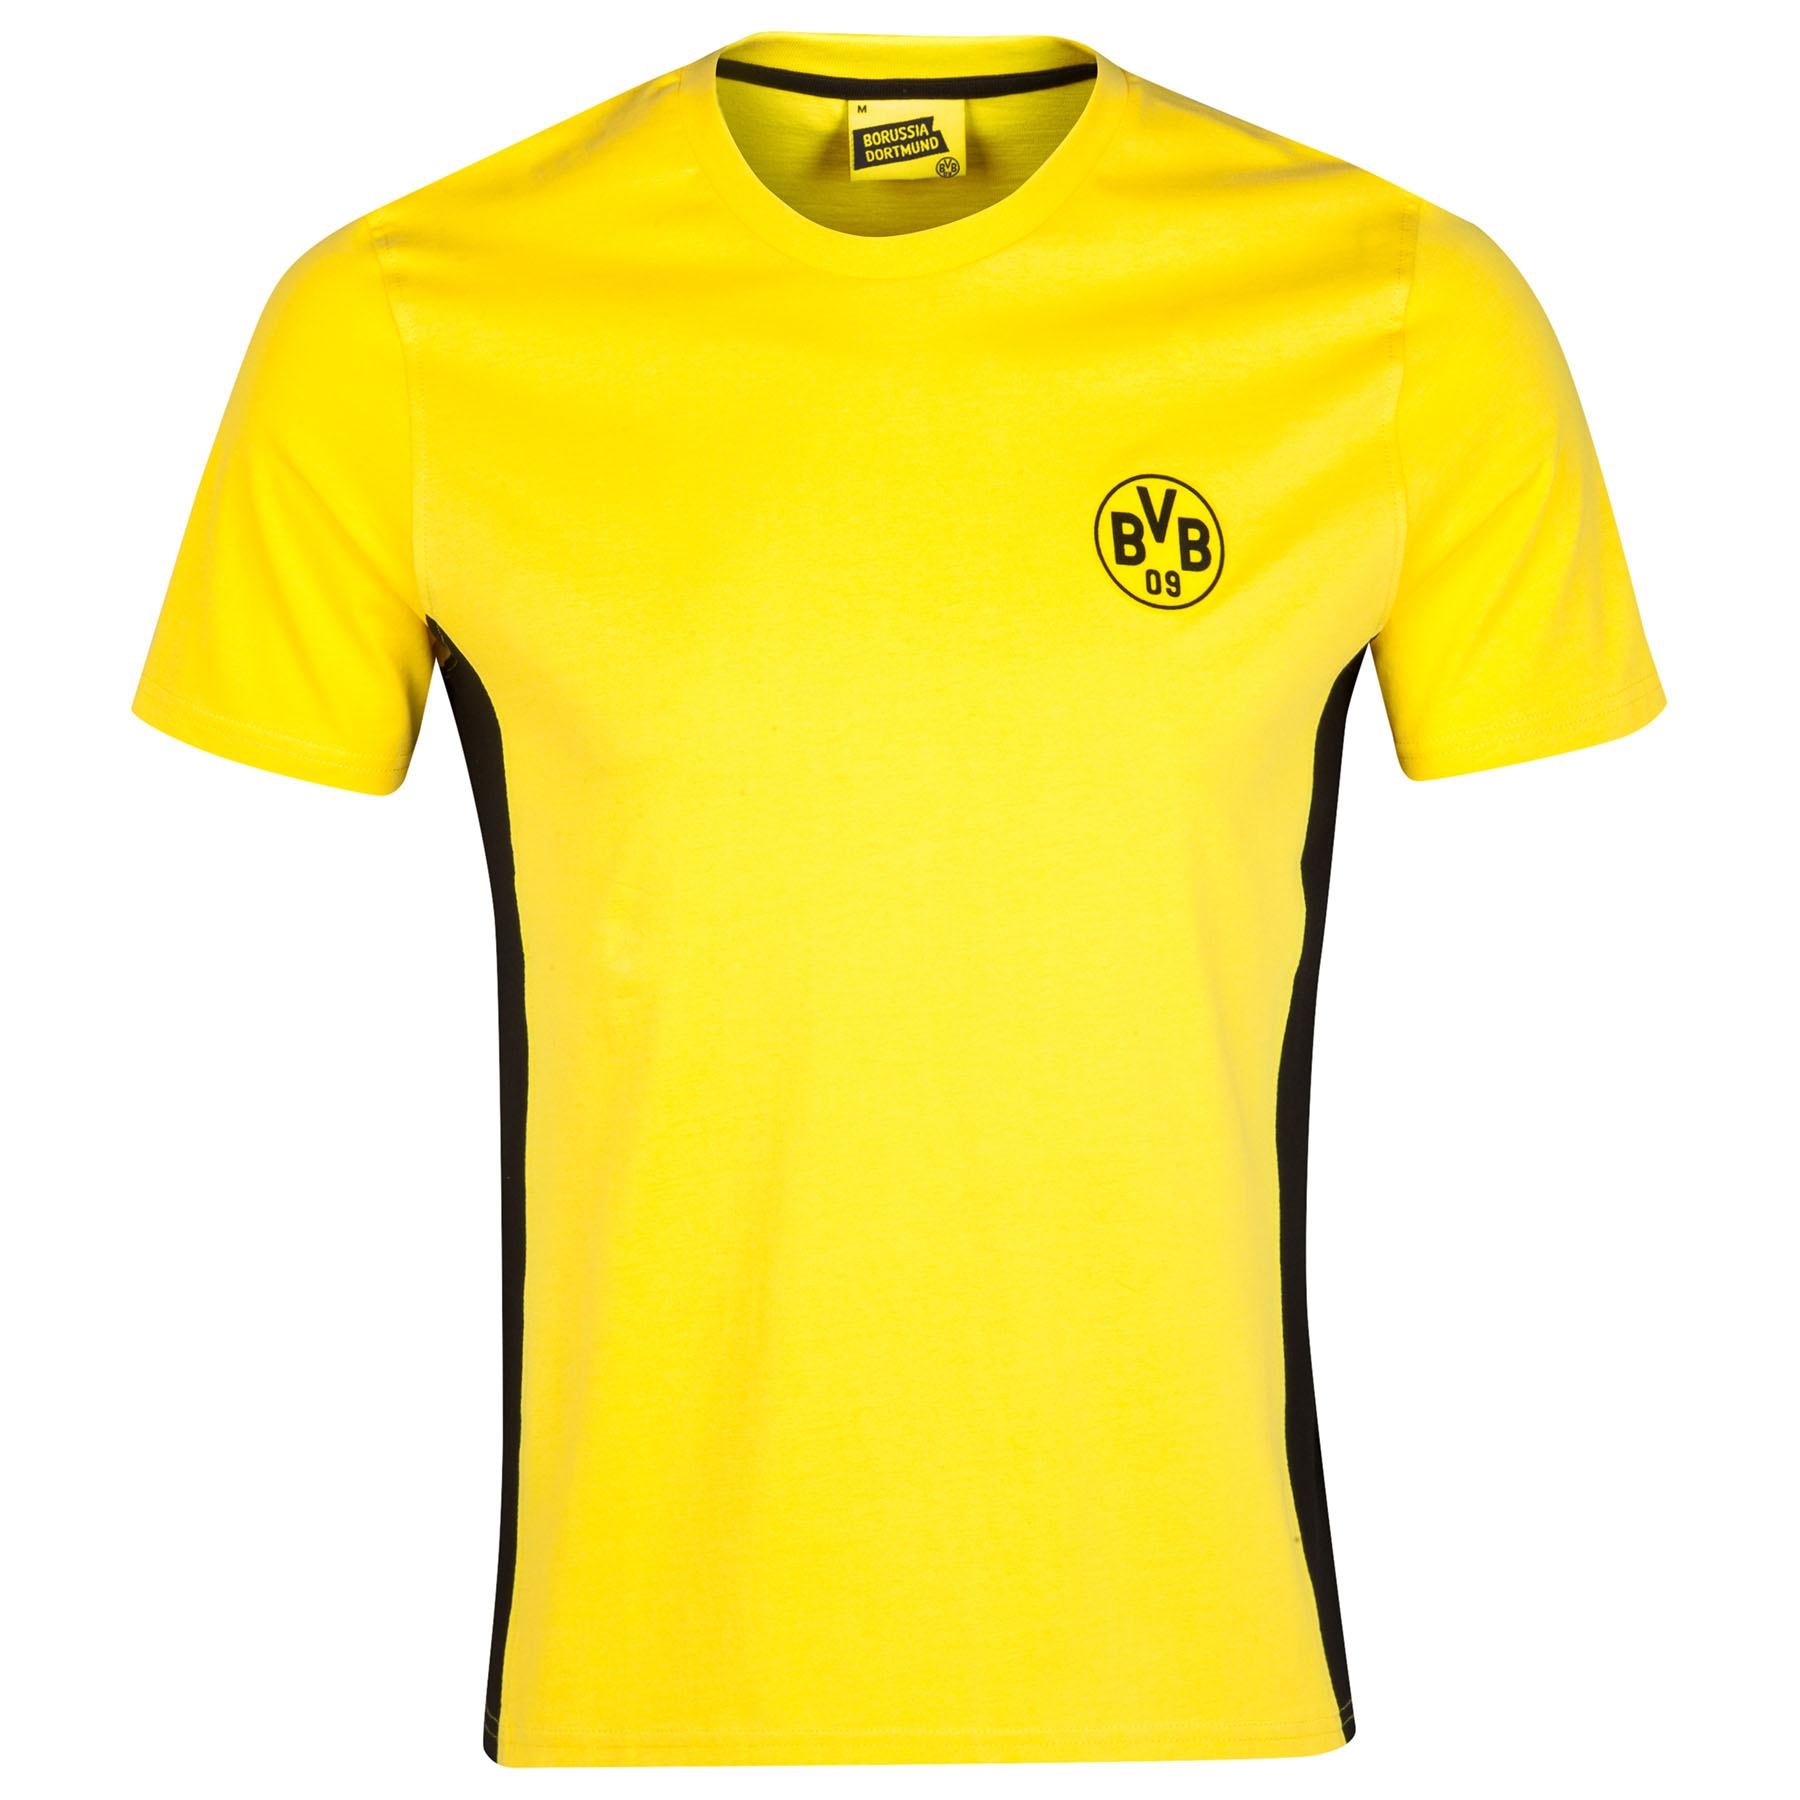 BVB T-Shirt - Yellow - Junior